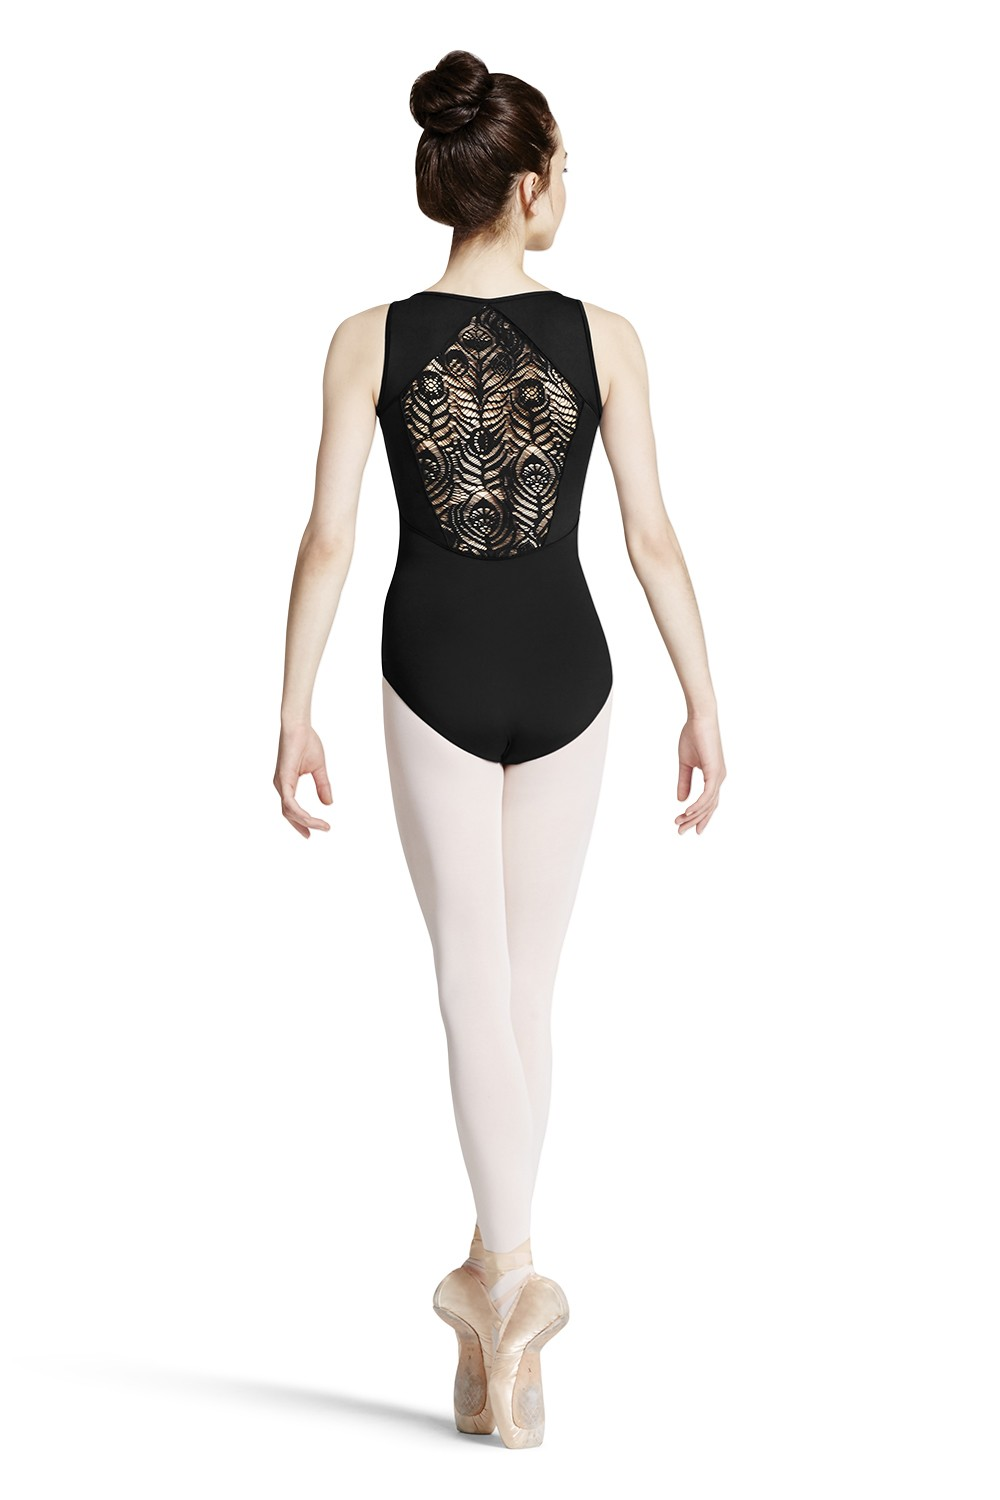 Body A Spallina Larga Con Pizzo A Piuma Di Pavone Womens Tank Leotards